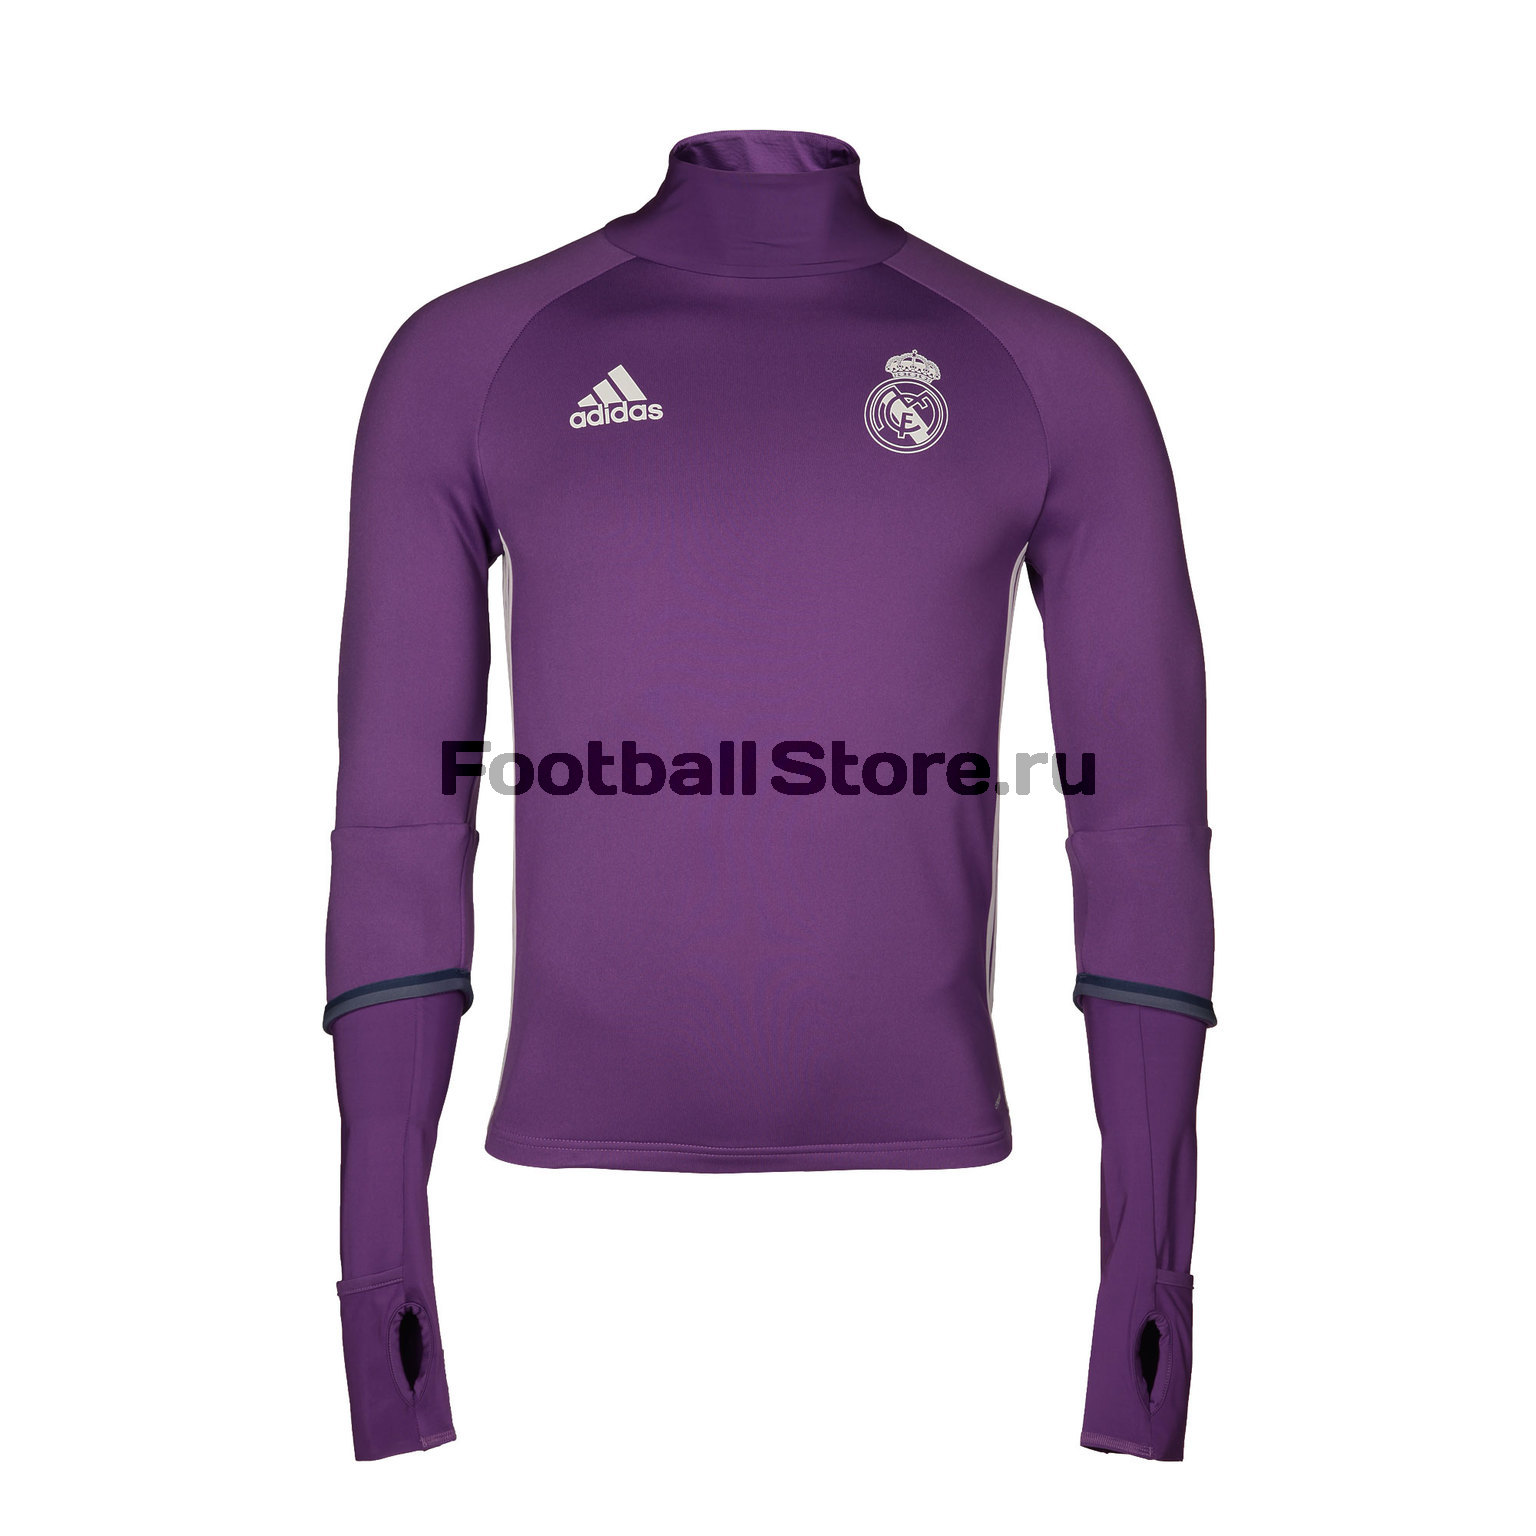 Real Madrid Adidas Свитер тренировочный Adidas Real Madrid TRG TOP AO3131 сумка через плечо women leather handbag messenger bags 2014 new shoulder bag ls5520 women leather handbag messenger bags 2015 new shoulder bag